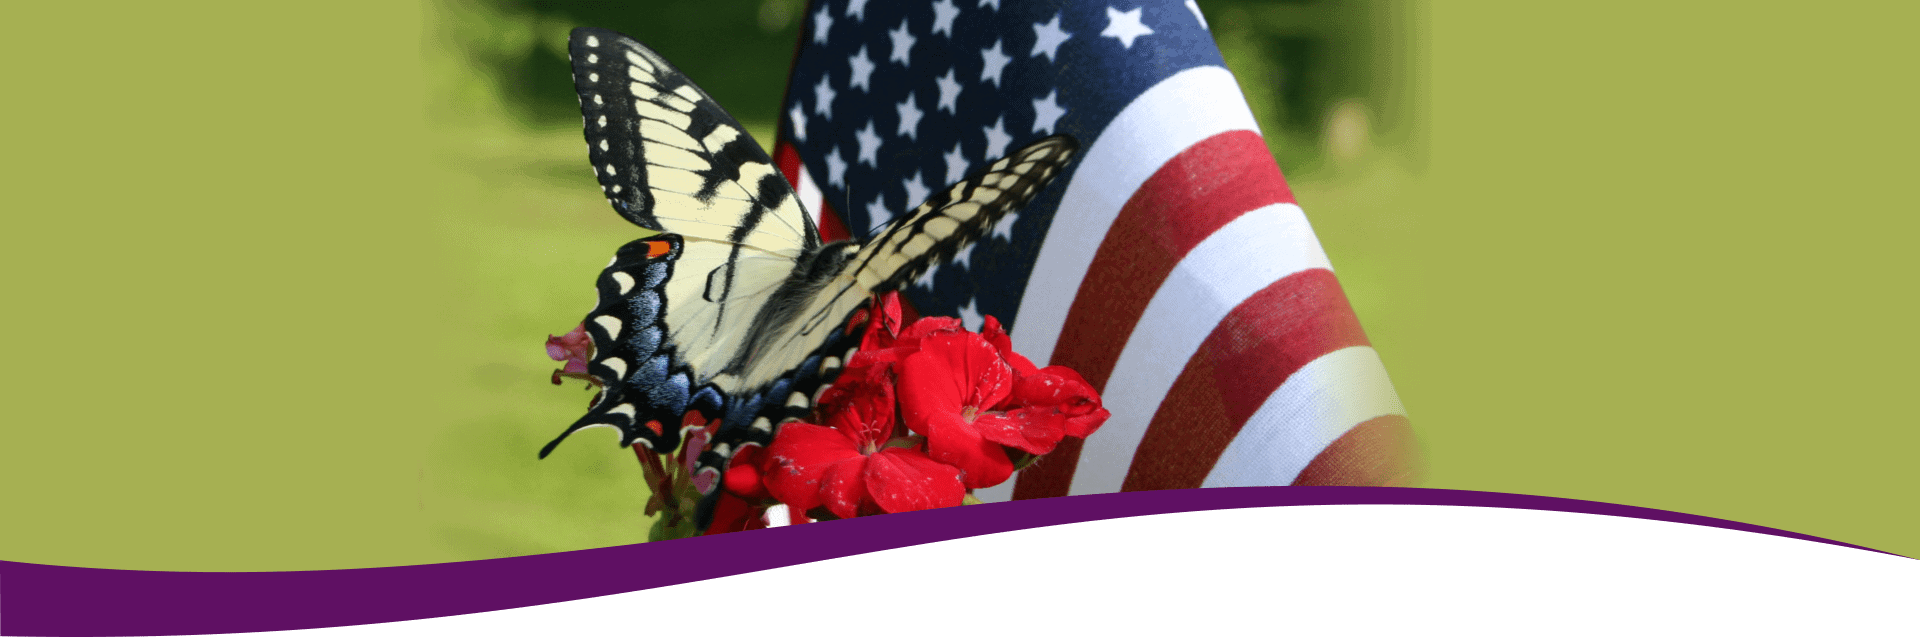 Beautiful butterfly on a red flower with American flag in the background